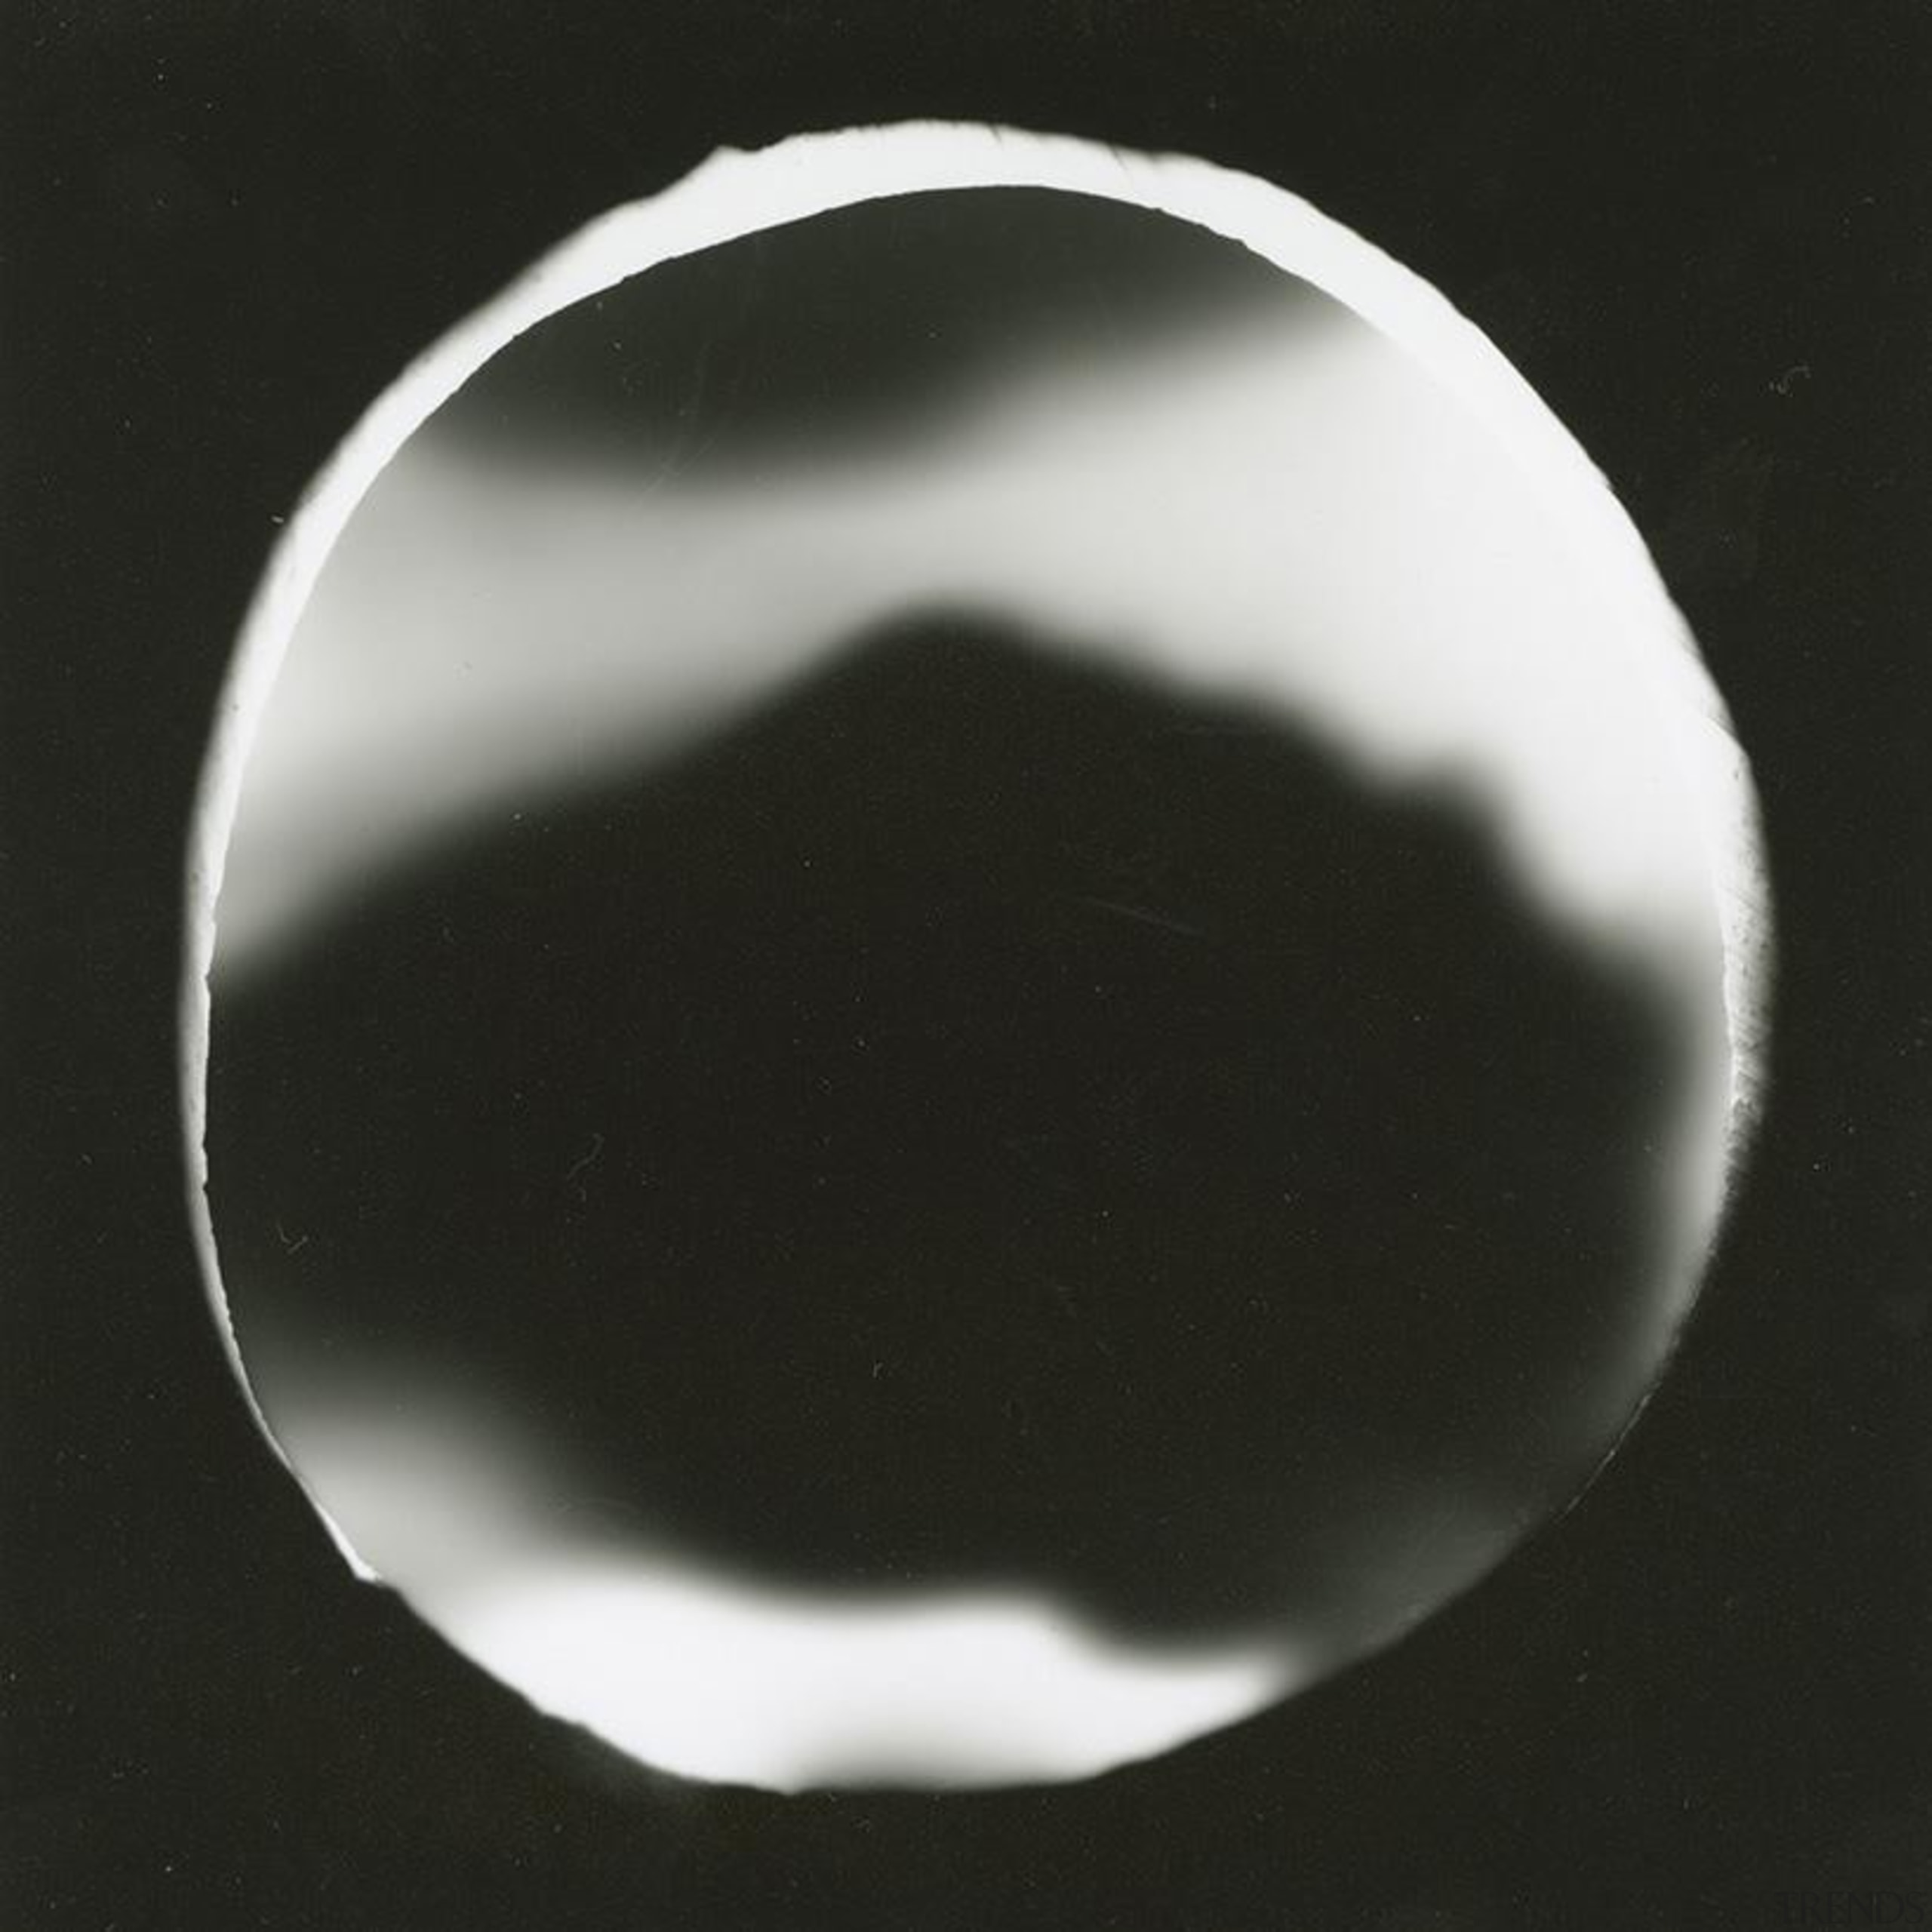 While usually only fulfilling the functions of being atmosphere, black and white, circle, monochrome, monochrome photography, phenomenon, sphere, black